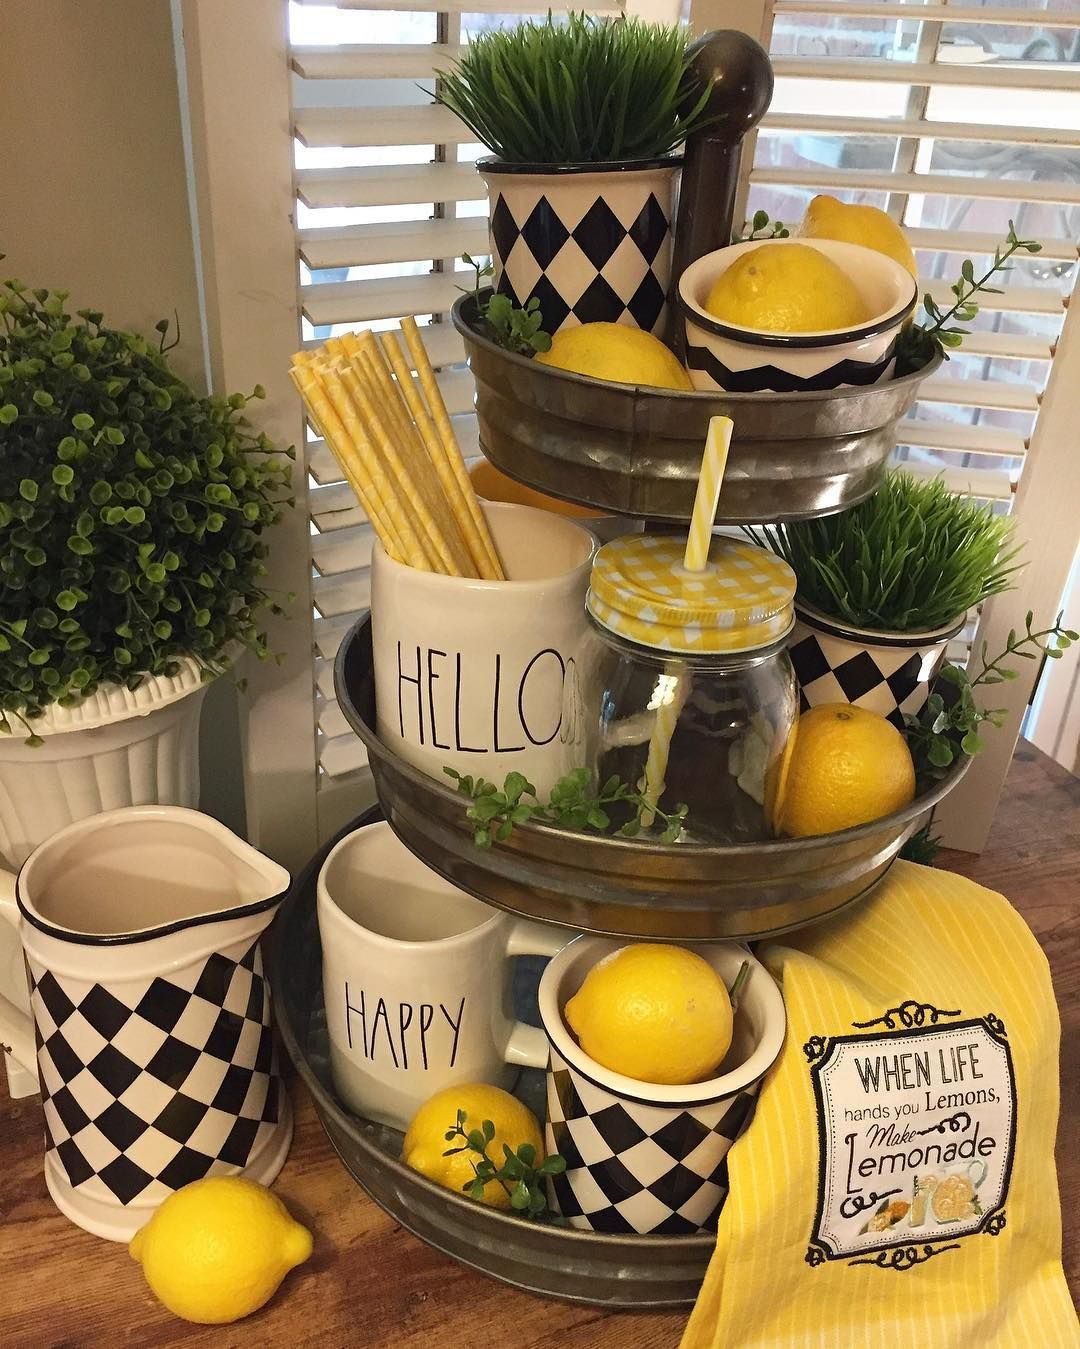 Lemon Kitchen Decor At Target: Pin By Angie Passon On Tiered Trays In 2018